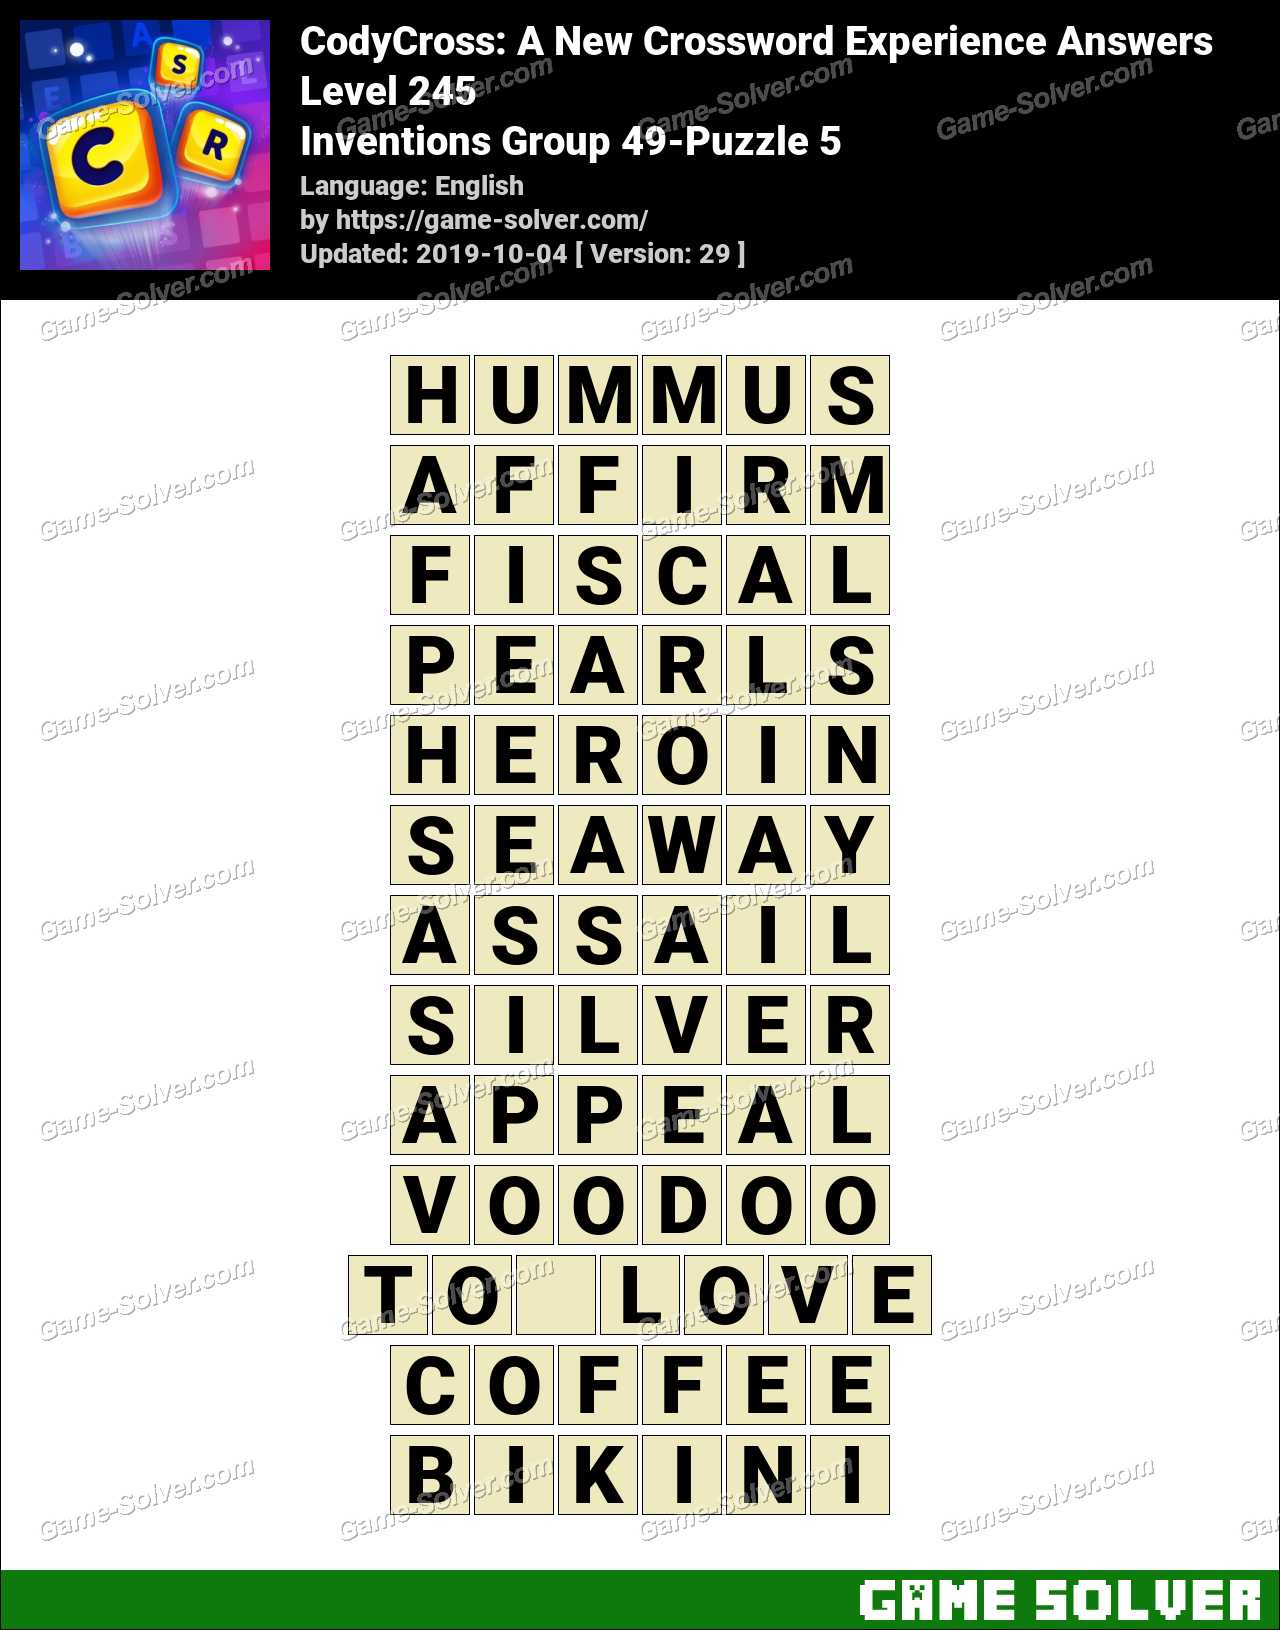 CodyCross Inventions Group 49-Puzzle 5 Answers